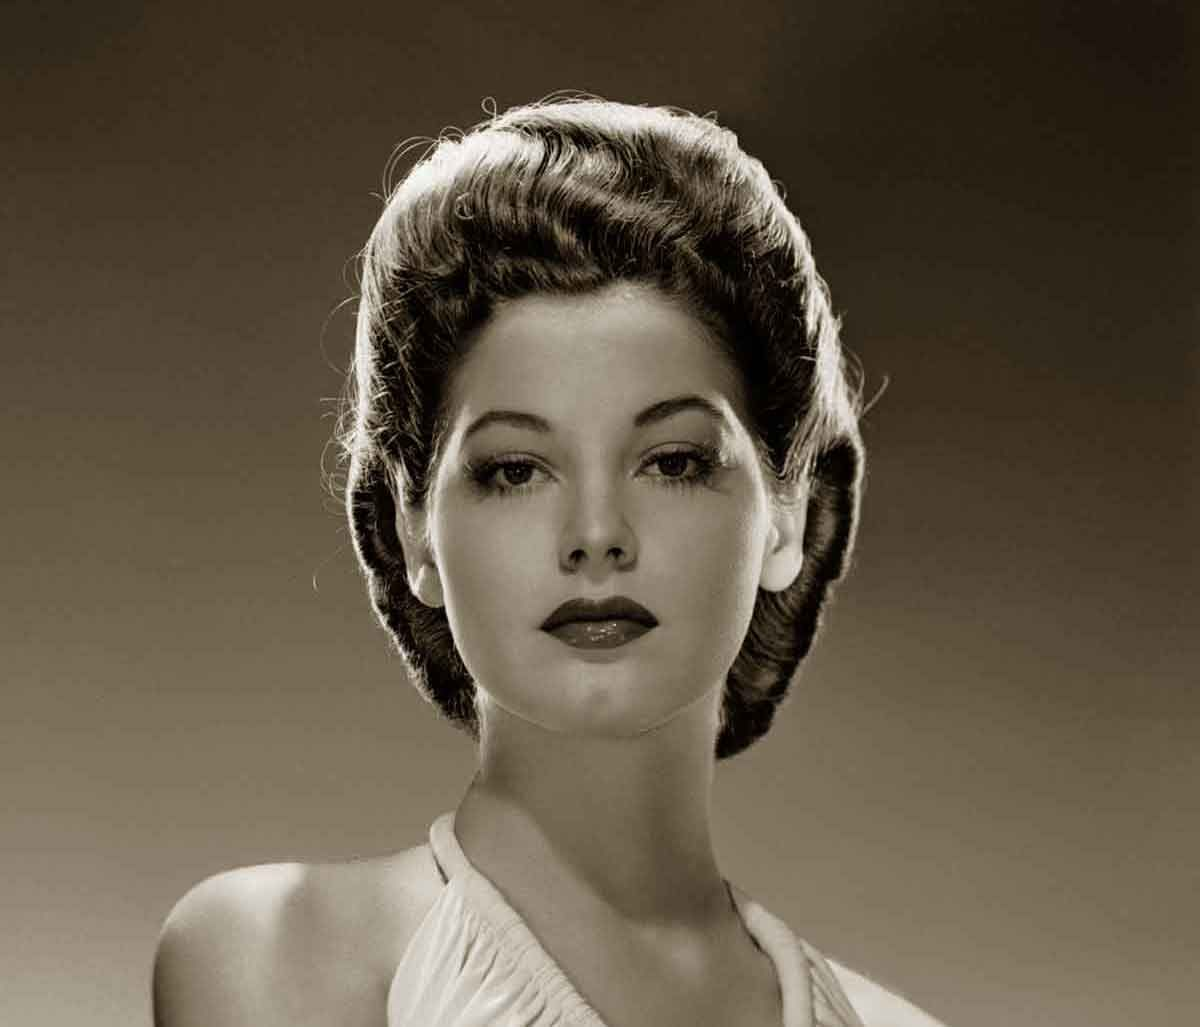 1940s hairstyles - memorable pompadours | vintage styling